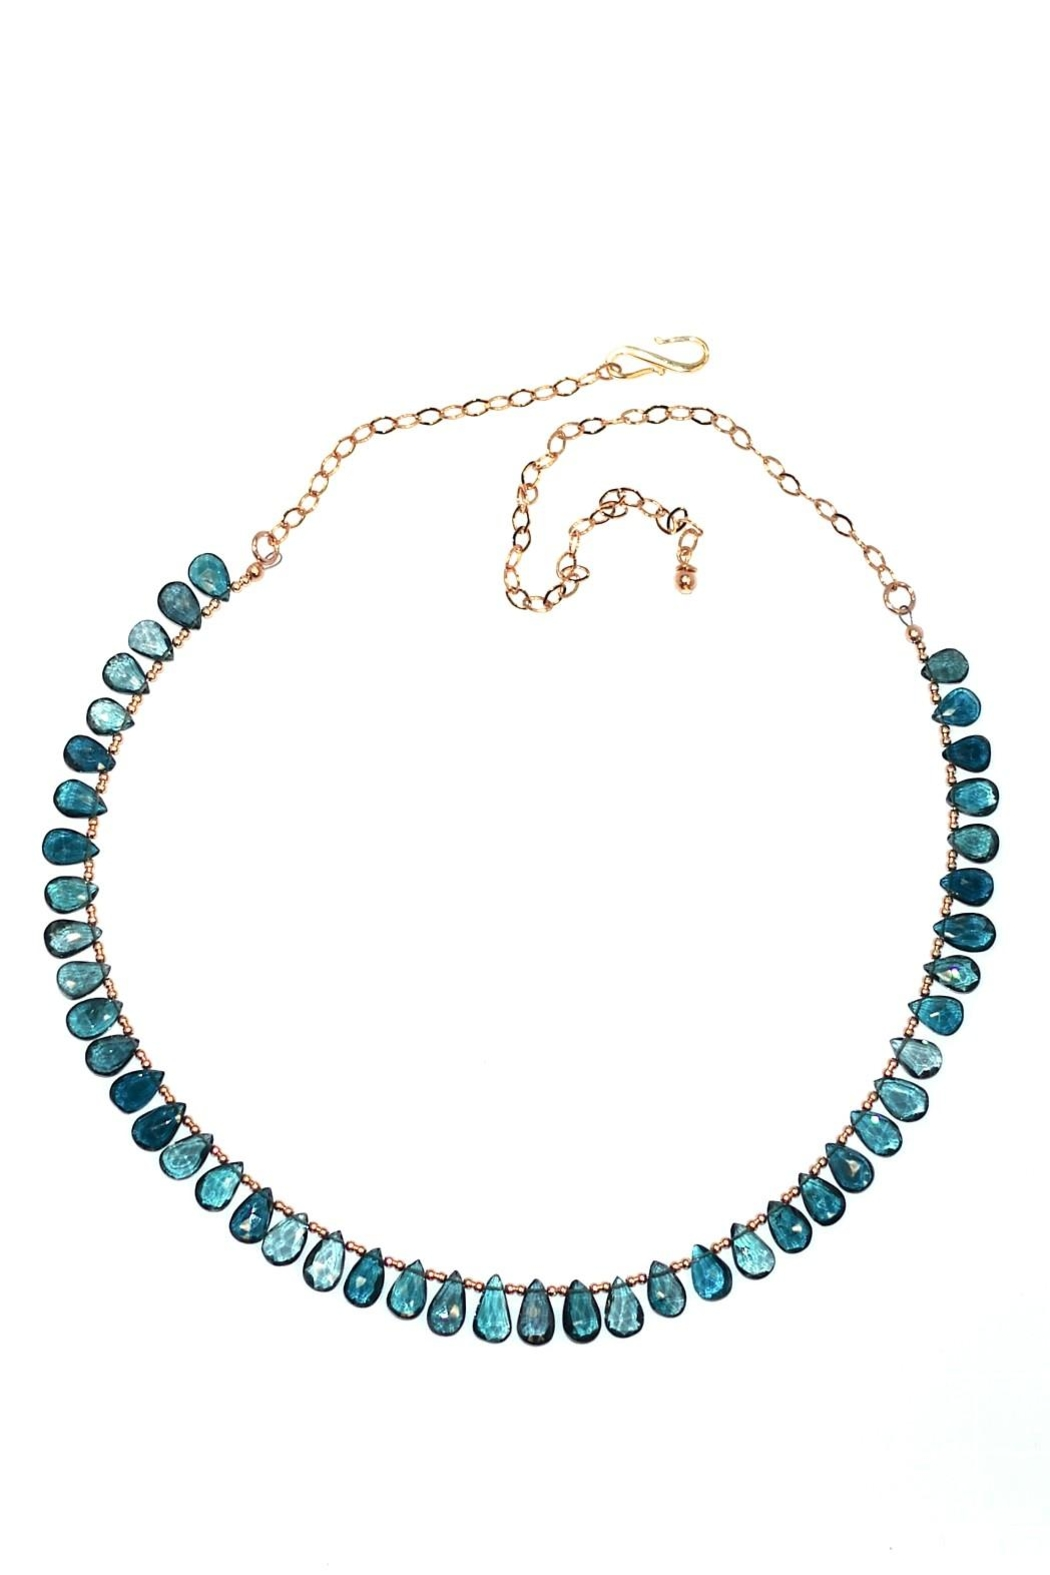 blue topaz mv diamond sterling oval zoom en cut kaystore zm silver necklace to kay with hover